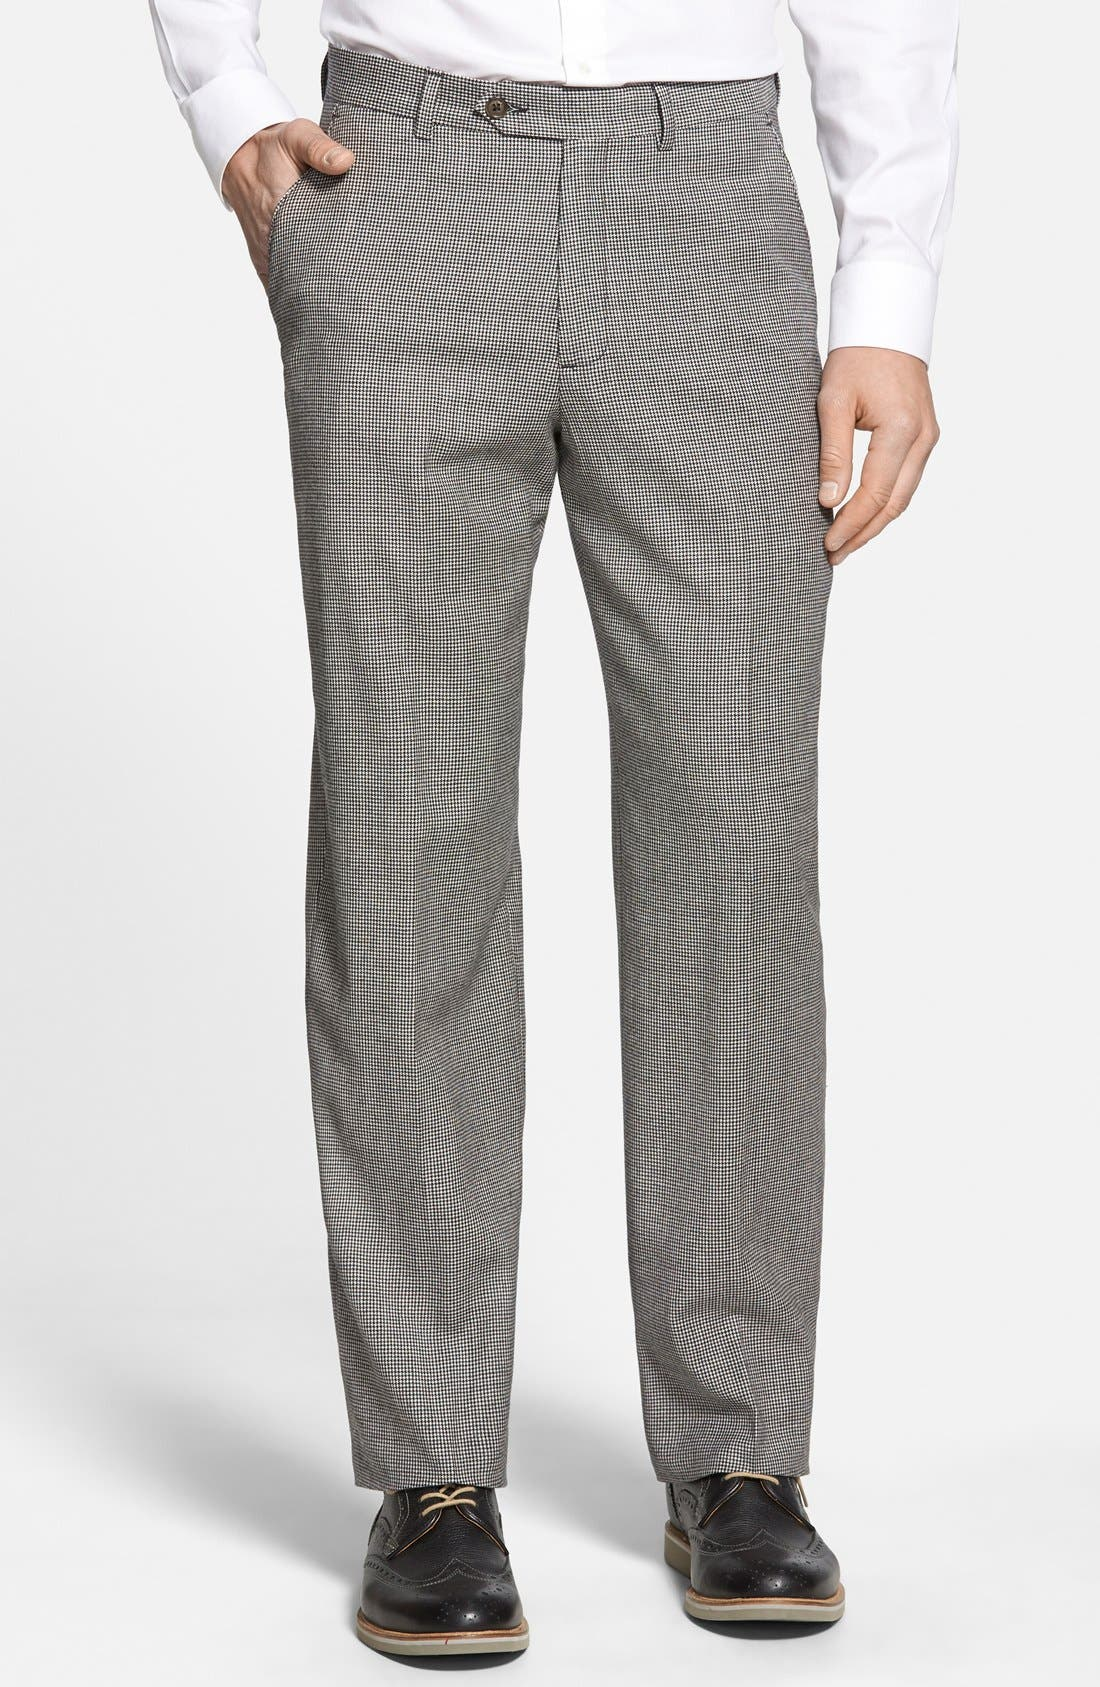 Main Image - Berle Flat Front Houndstooth Wool Trousers